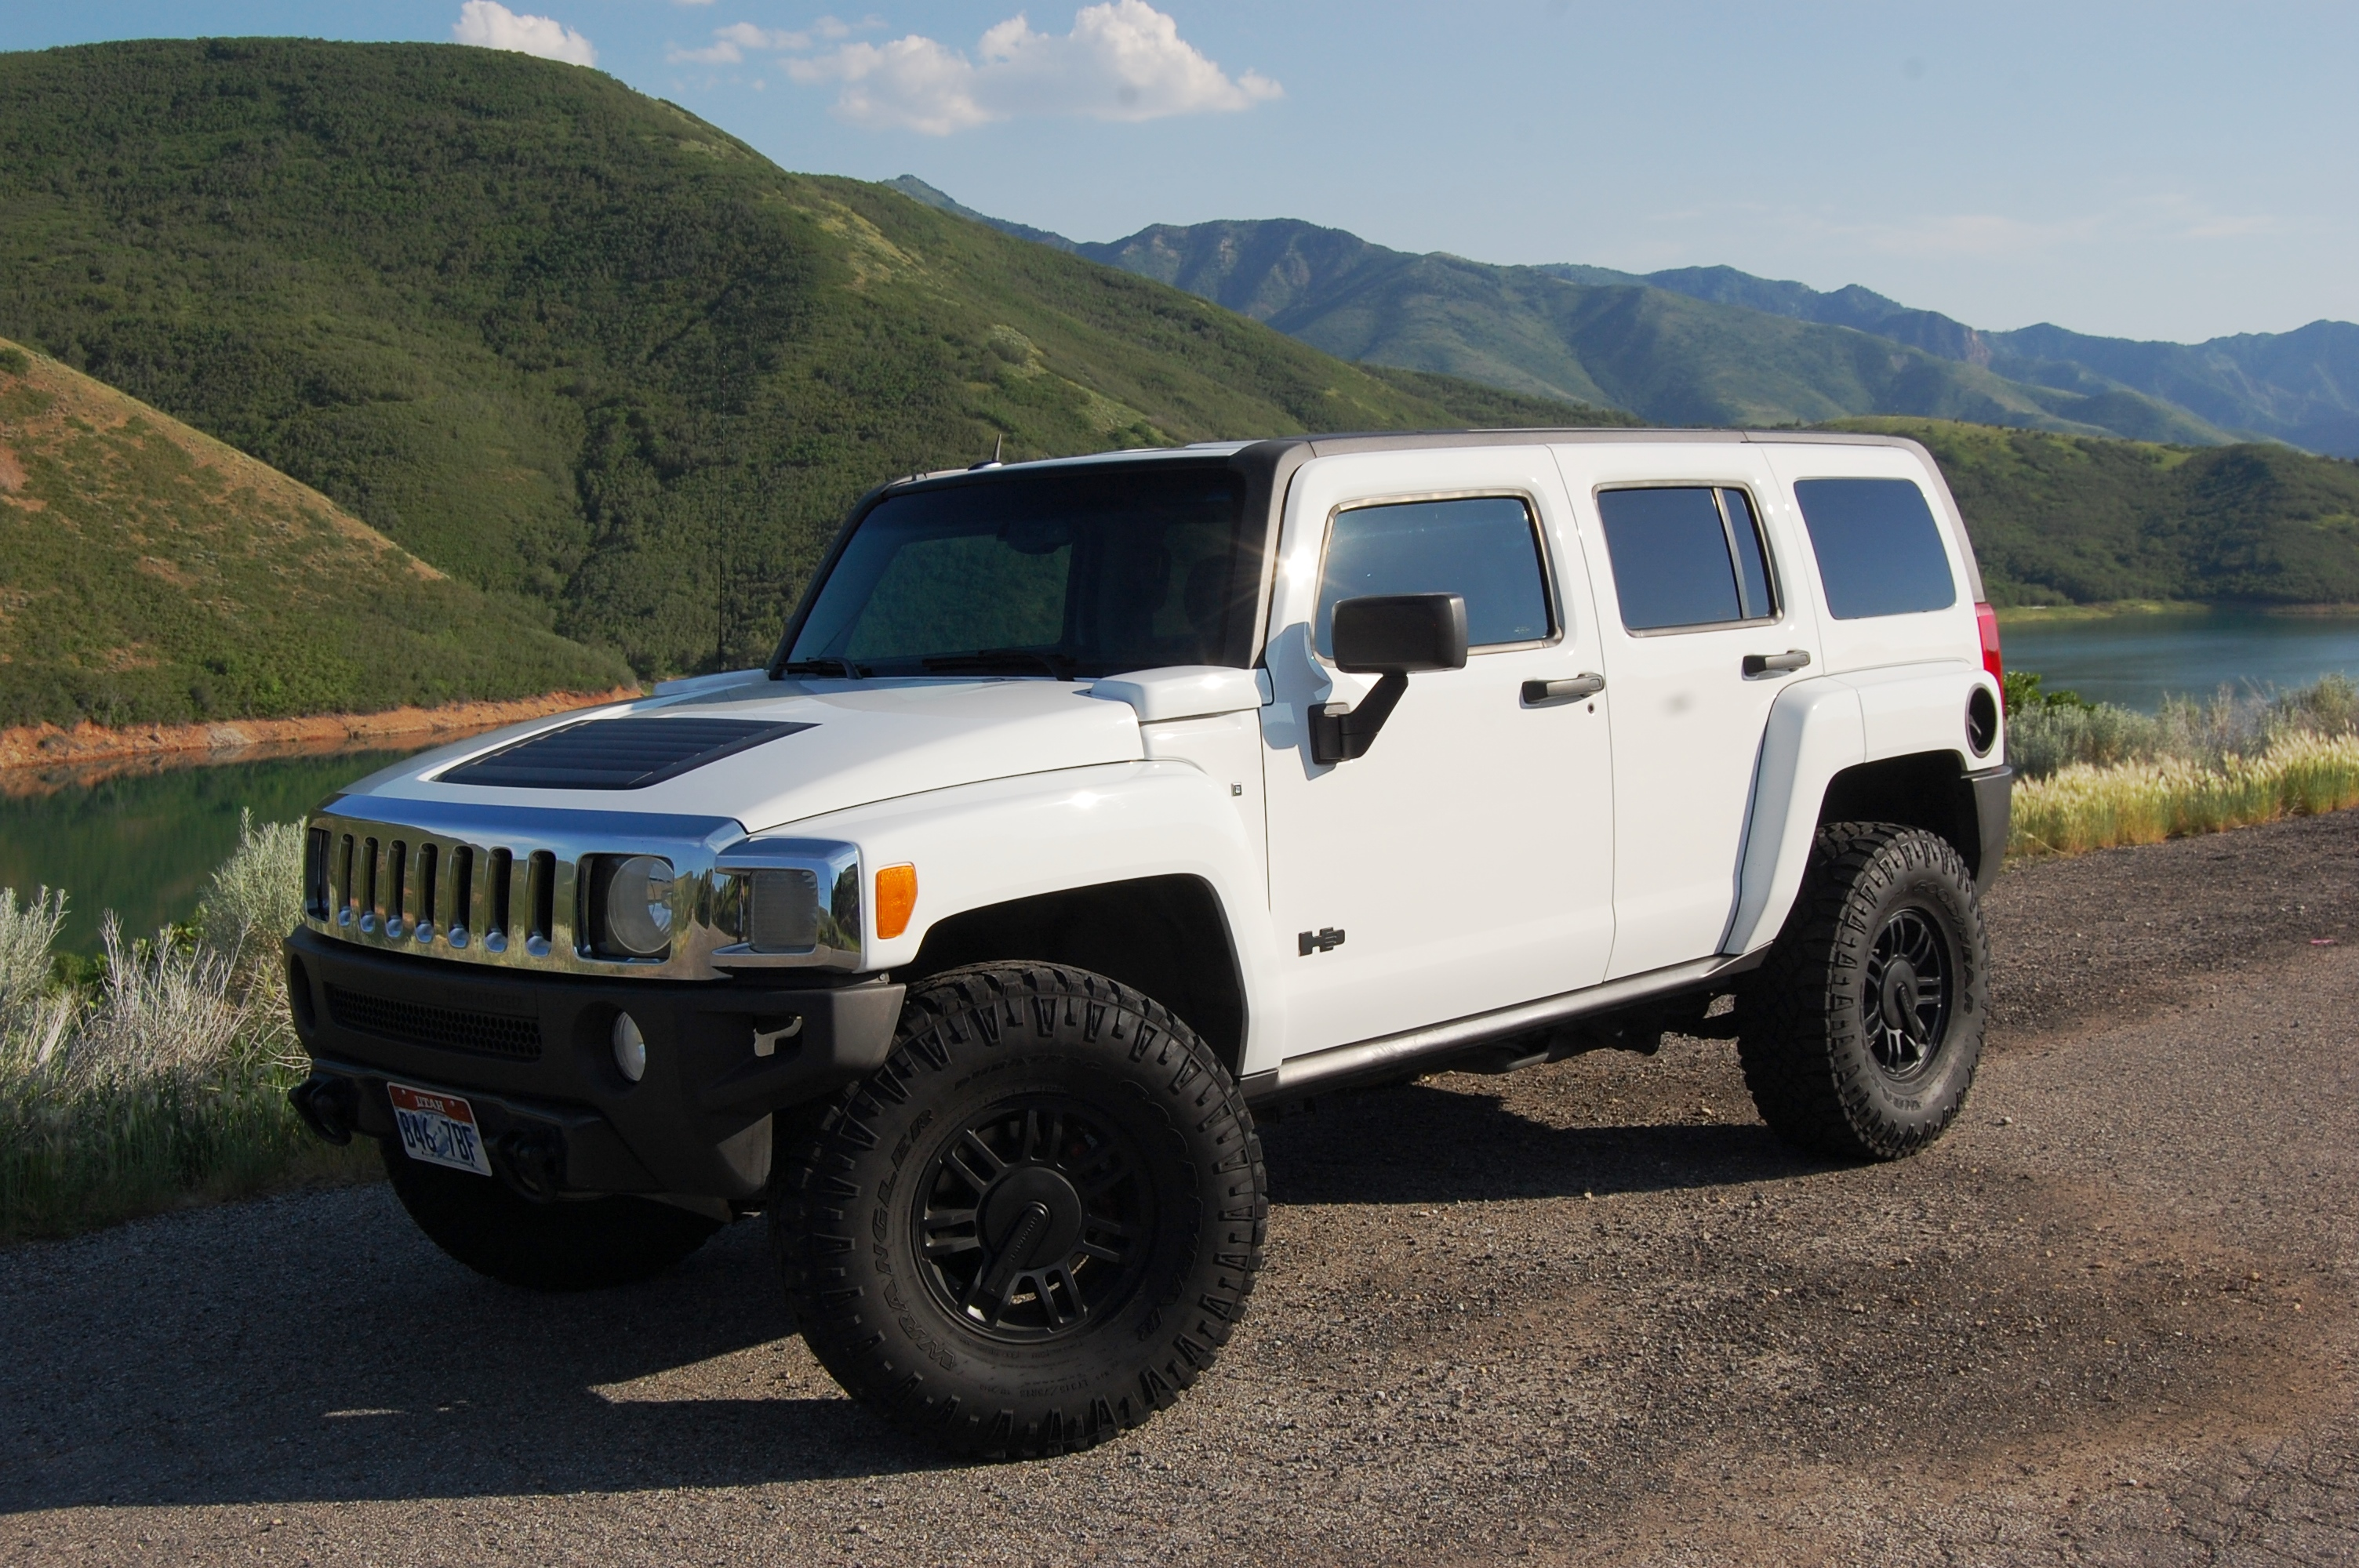 For Sale 2007 Hummer H3 77k Miles 5spd Manual Utah Hummer